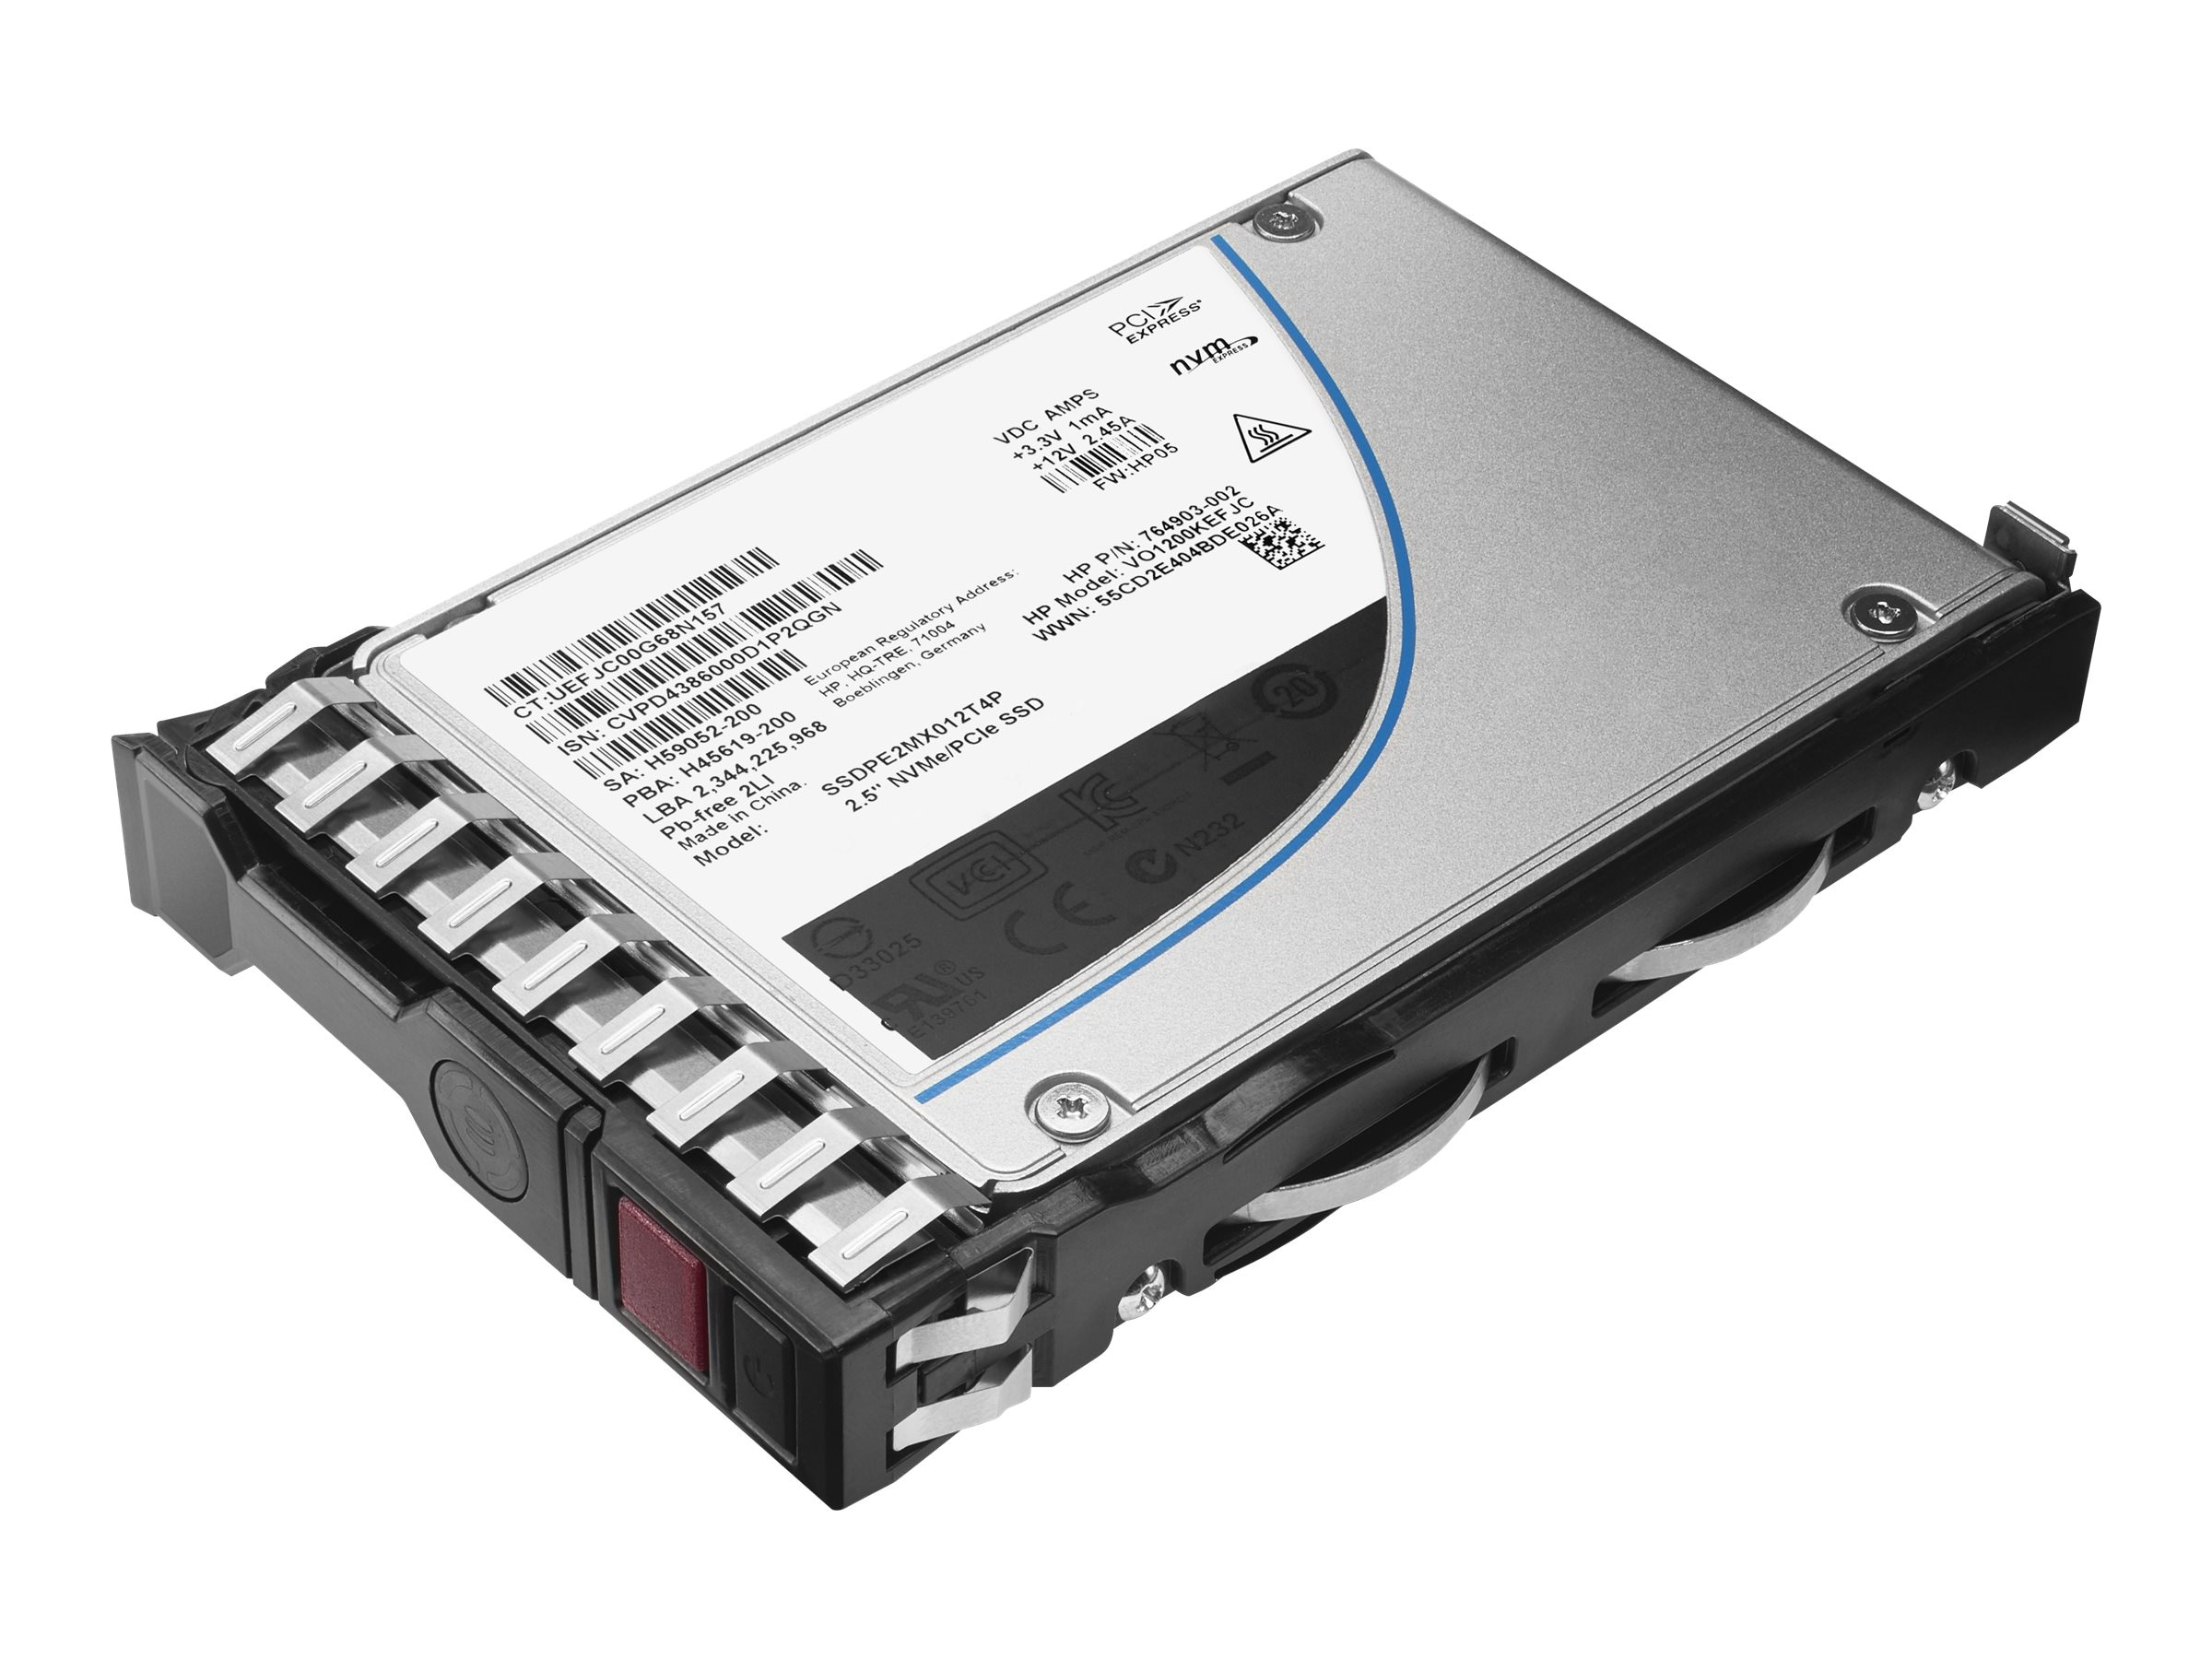 HPE 800GB SAS 12Gb s Write Intensive SFF 2.5 Hot Plug Solid State Drive